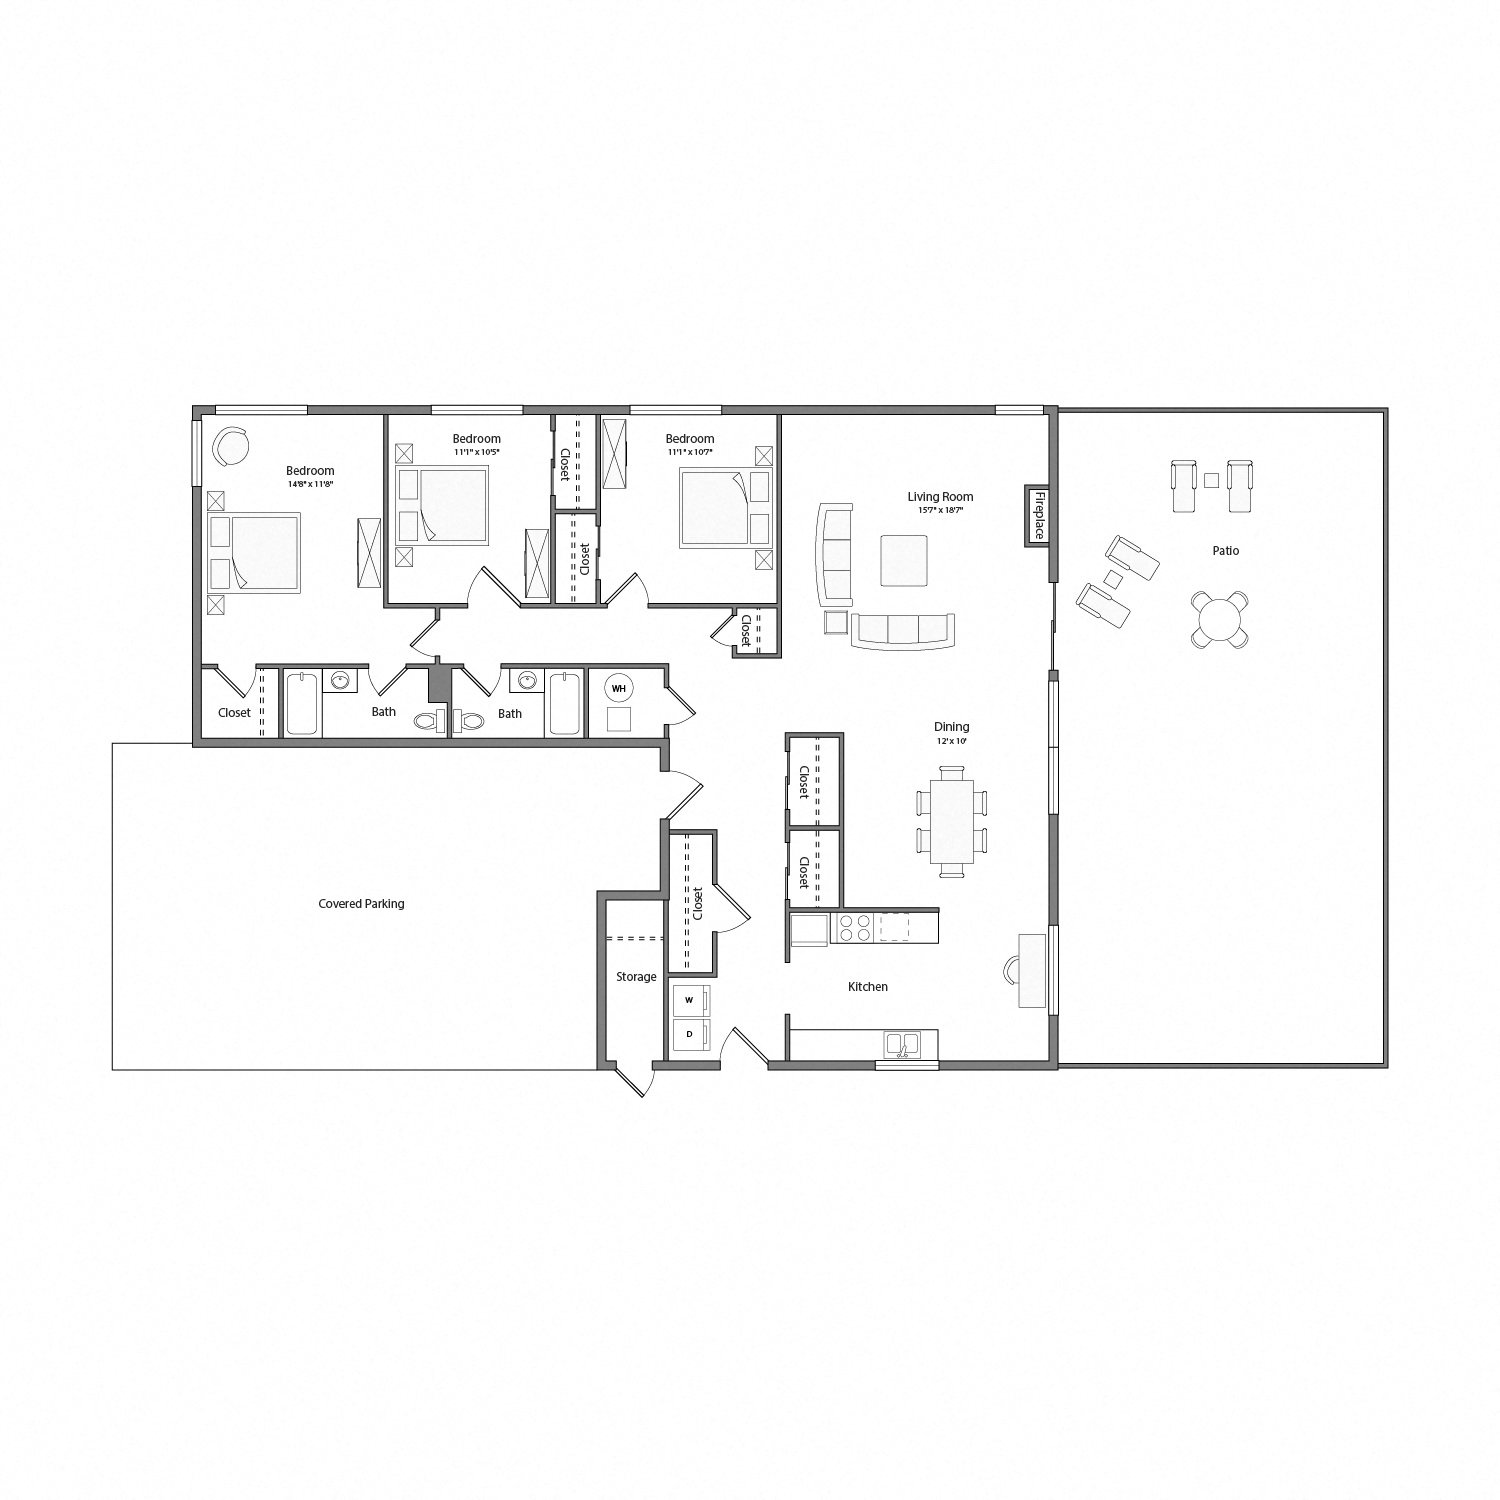 Sycamore house floor plan diagram. Three bedrooms, two bathrooms, a kitchen, an open living and dining area with doors to a large patio, a laundry nook, and a covered parking area.